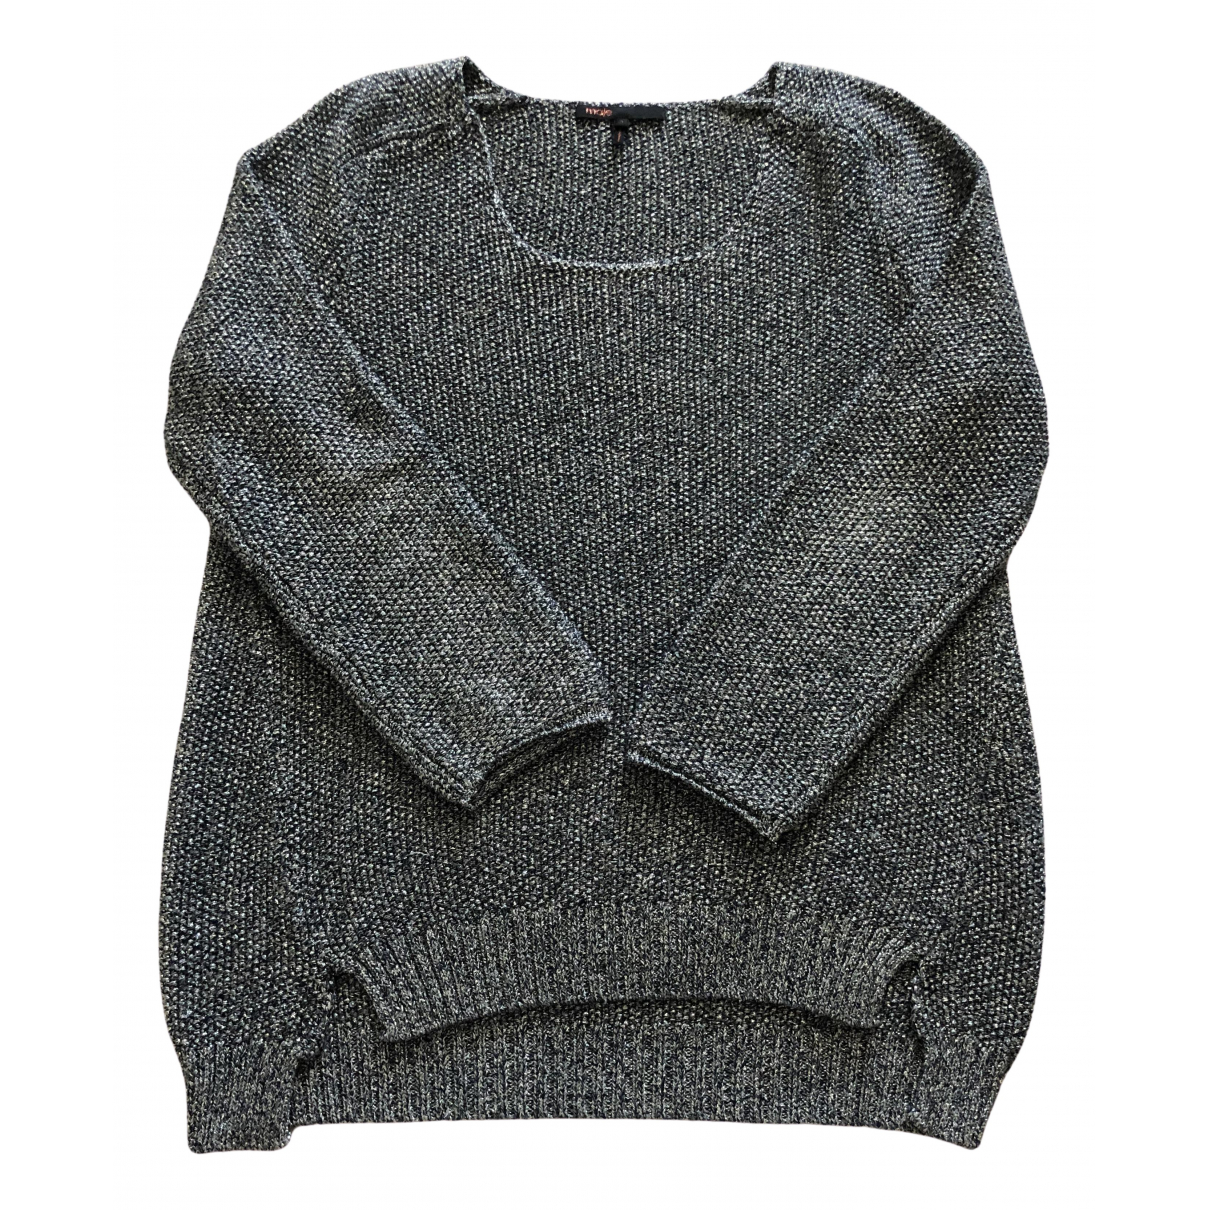 Maje \N Silver Knitwear for Women 38 FR